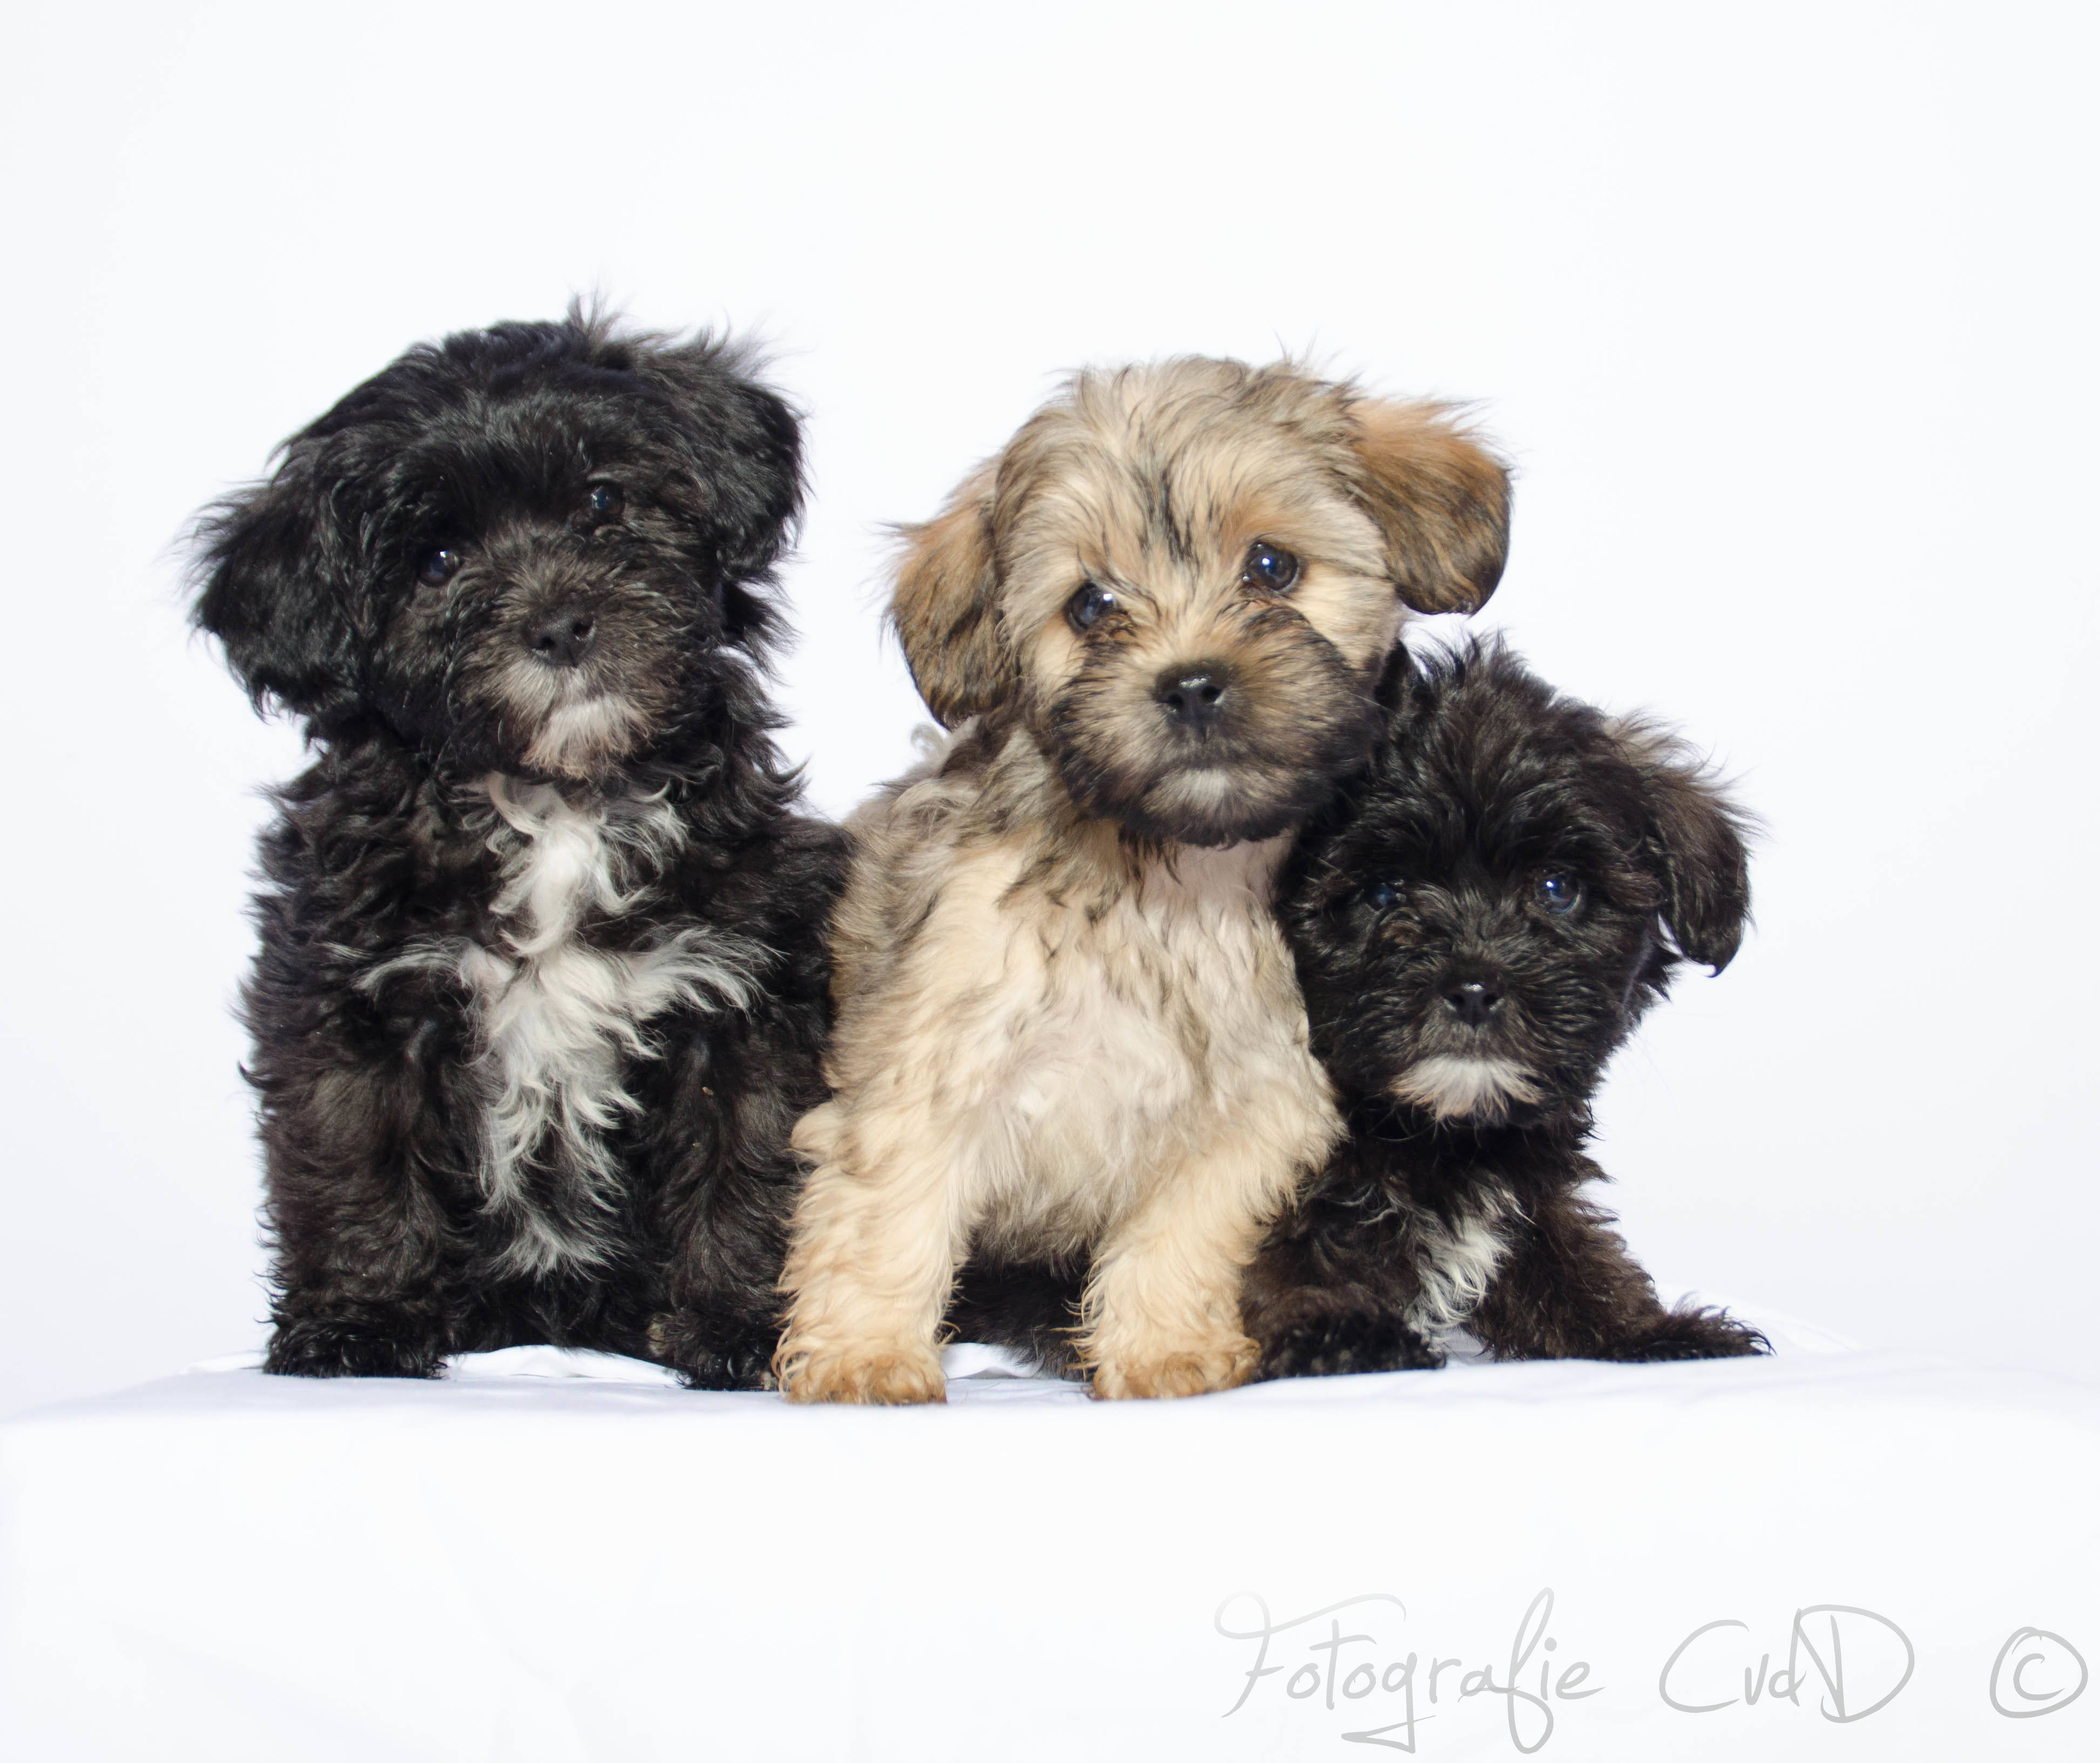 Shih Tzu X Poodle Mix Breed Puppies Poodle Mix Breeds Puppies